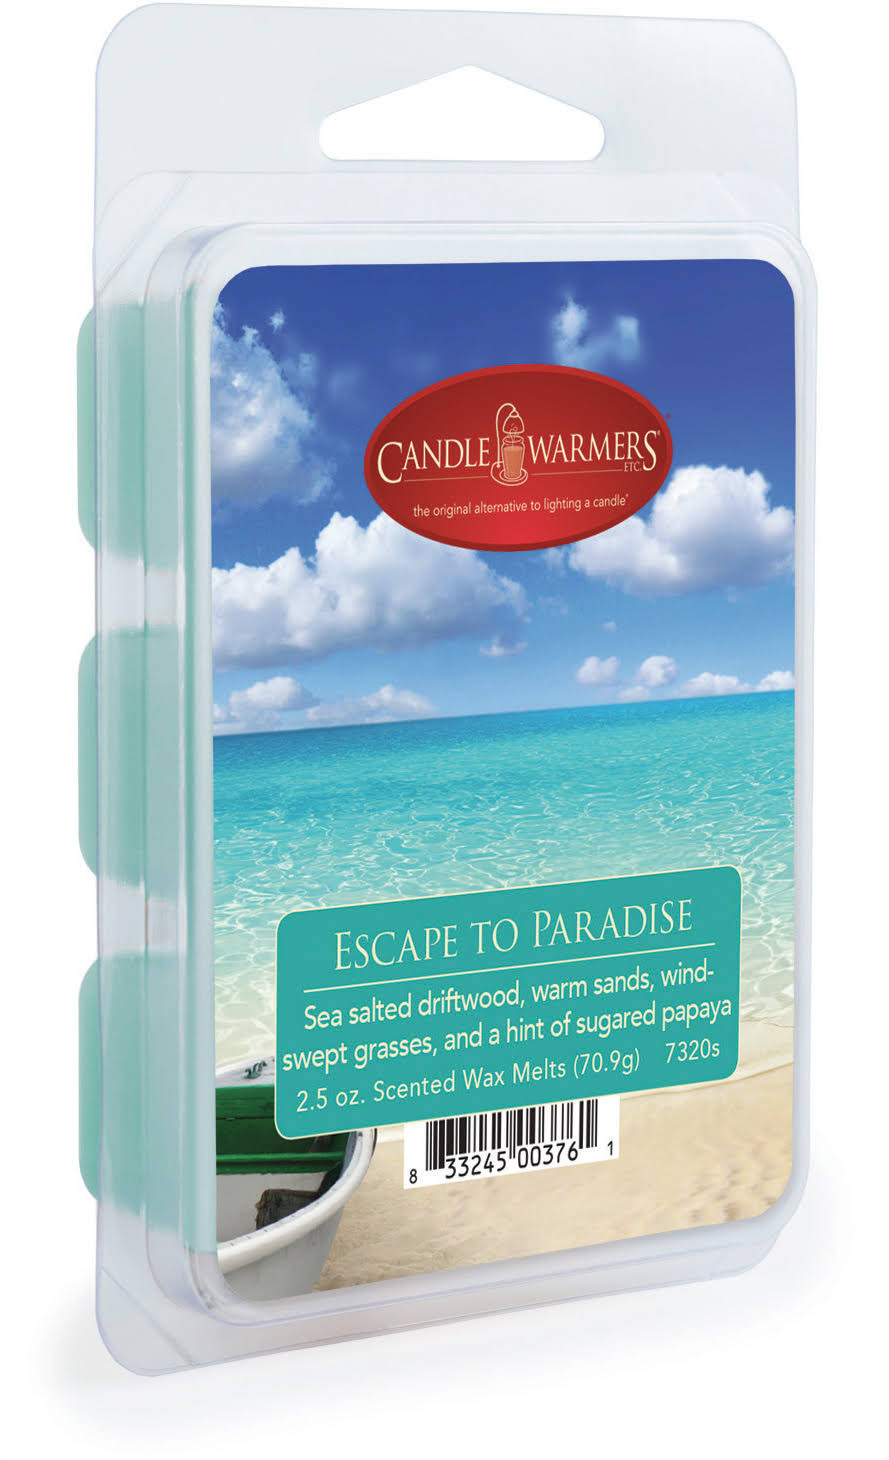 Candle Warmers Etc Wax Melts, Scented, Escape to Paradise - 2.5 oz